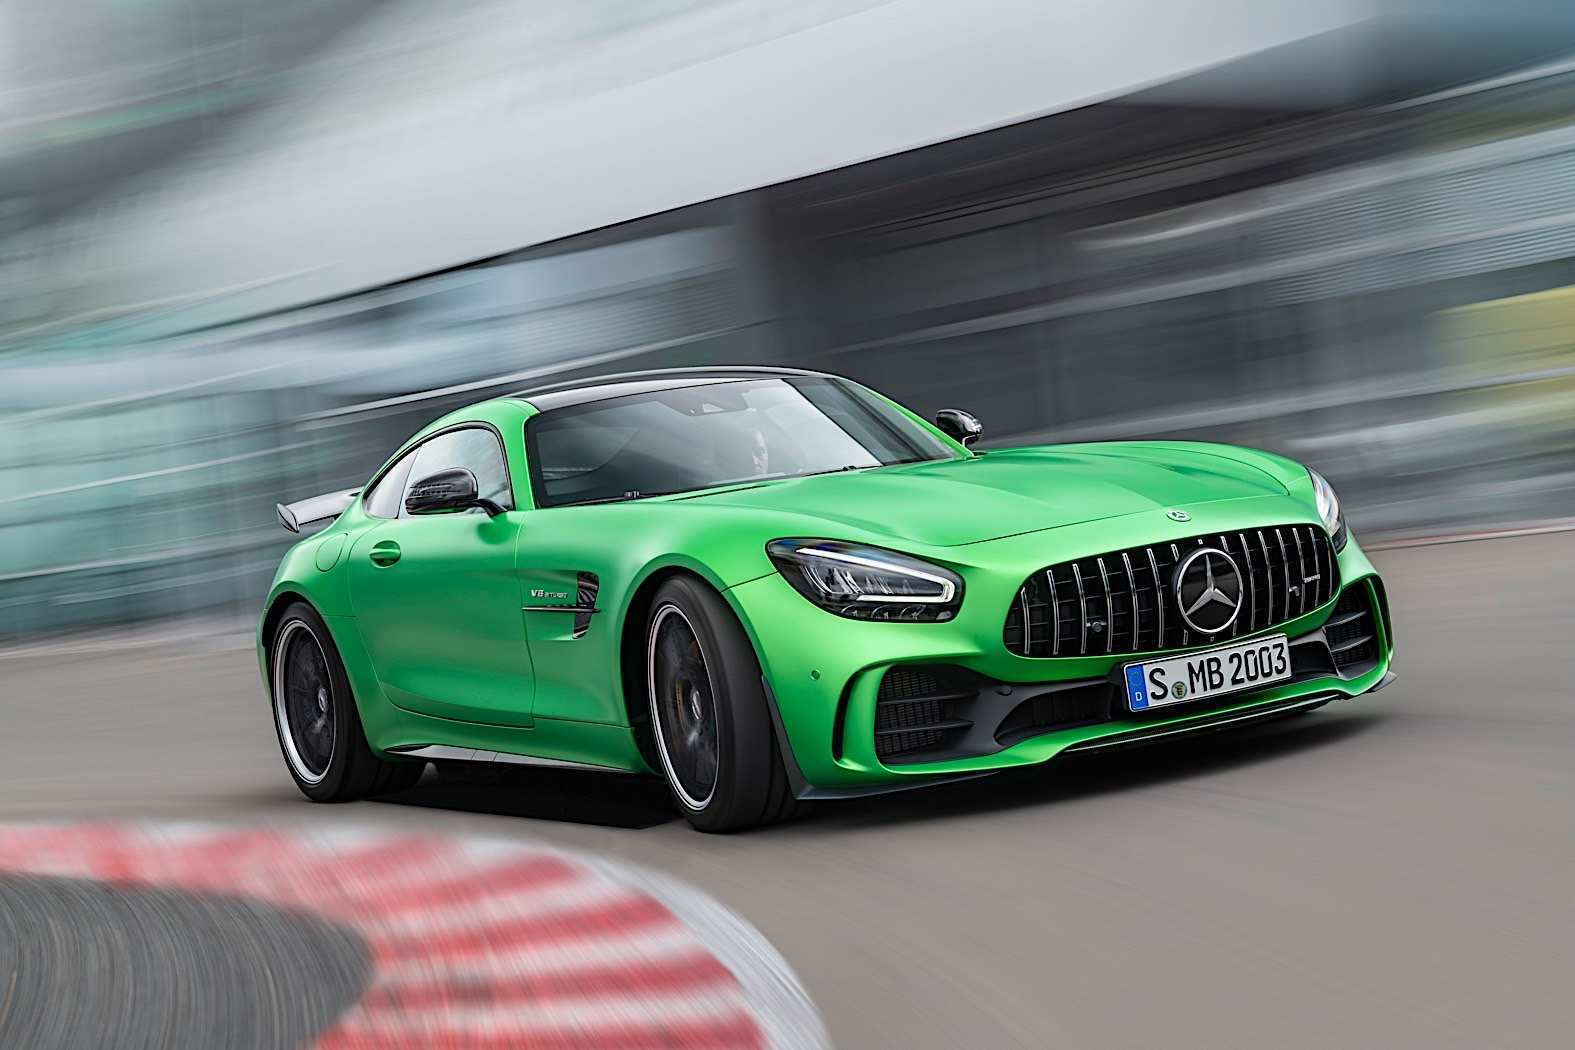 65 All New 2020 Mercedes Lineup Spy Shoot with 2020 Mercedes Lineup